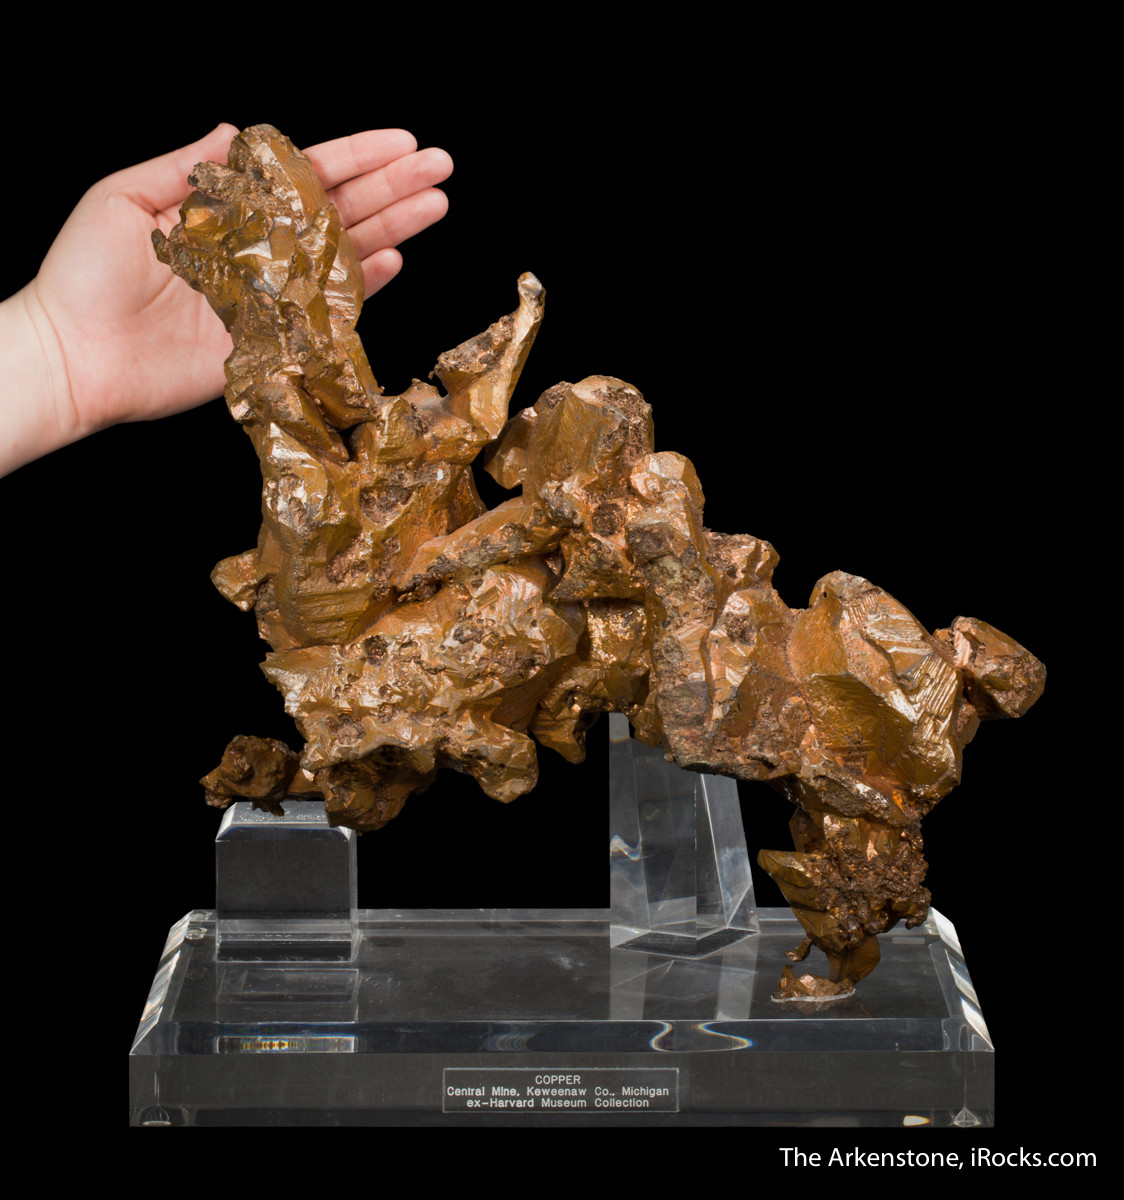 copper-centralmine-michigan-38cm-jb1743-hand